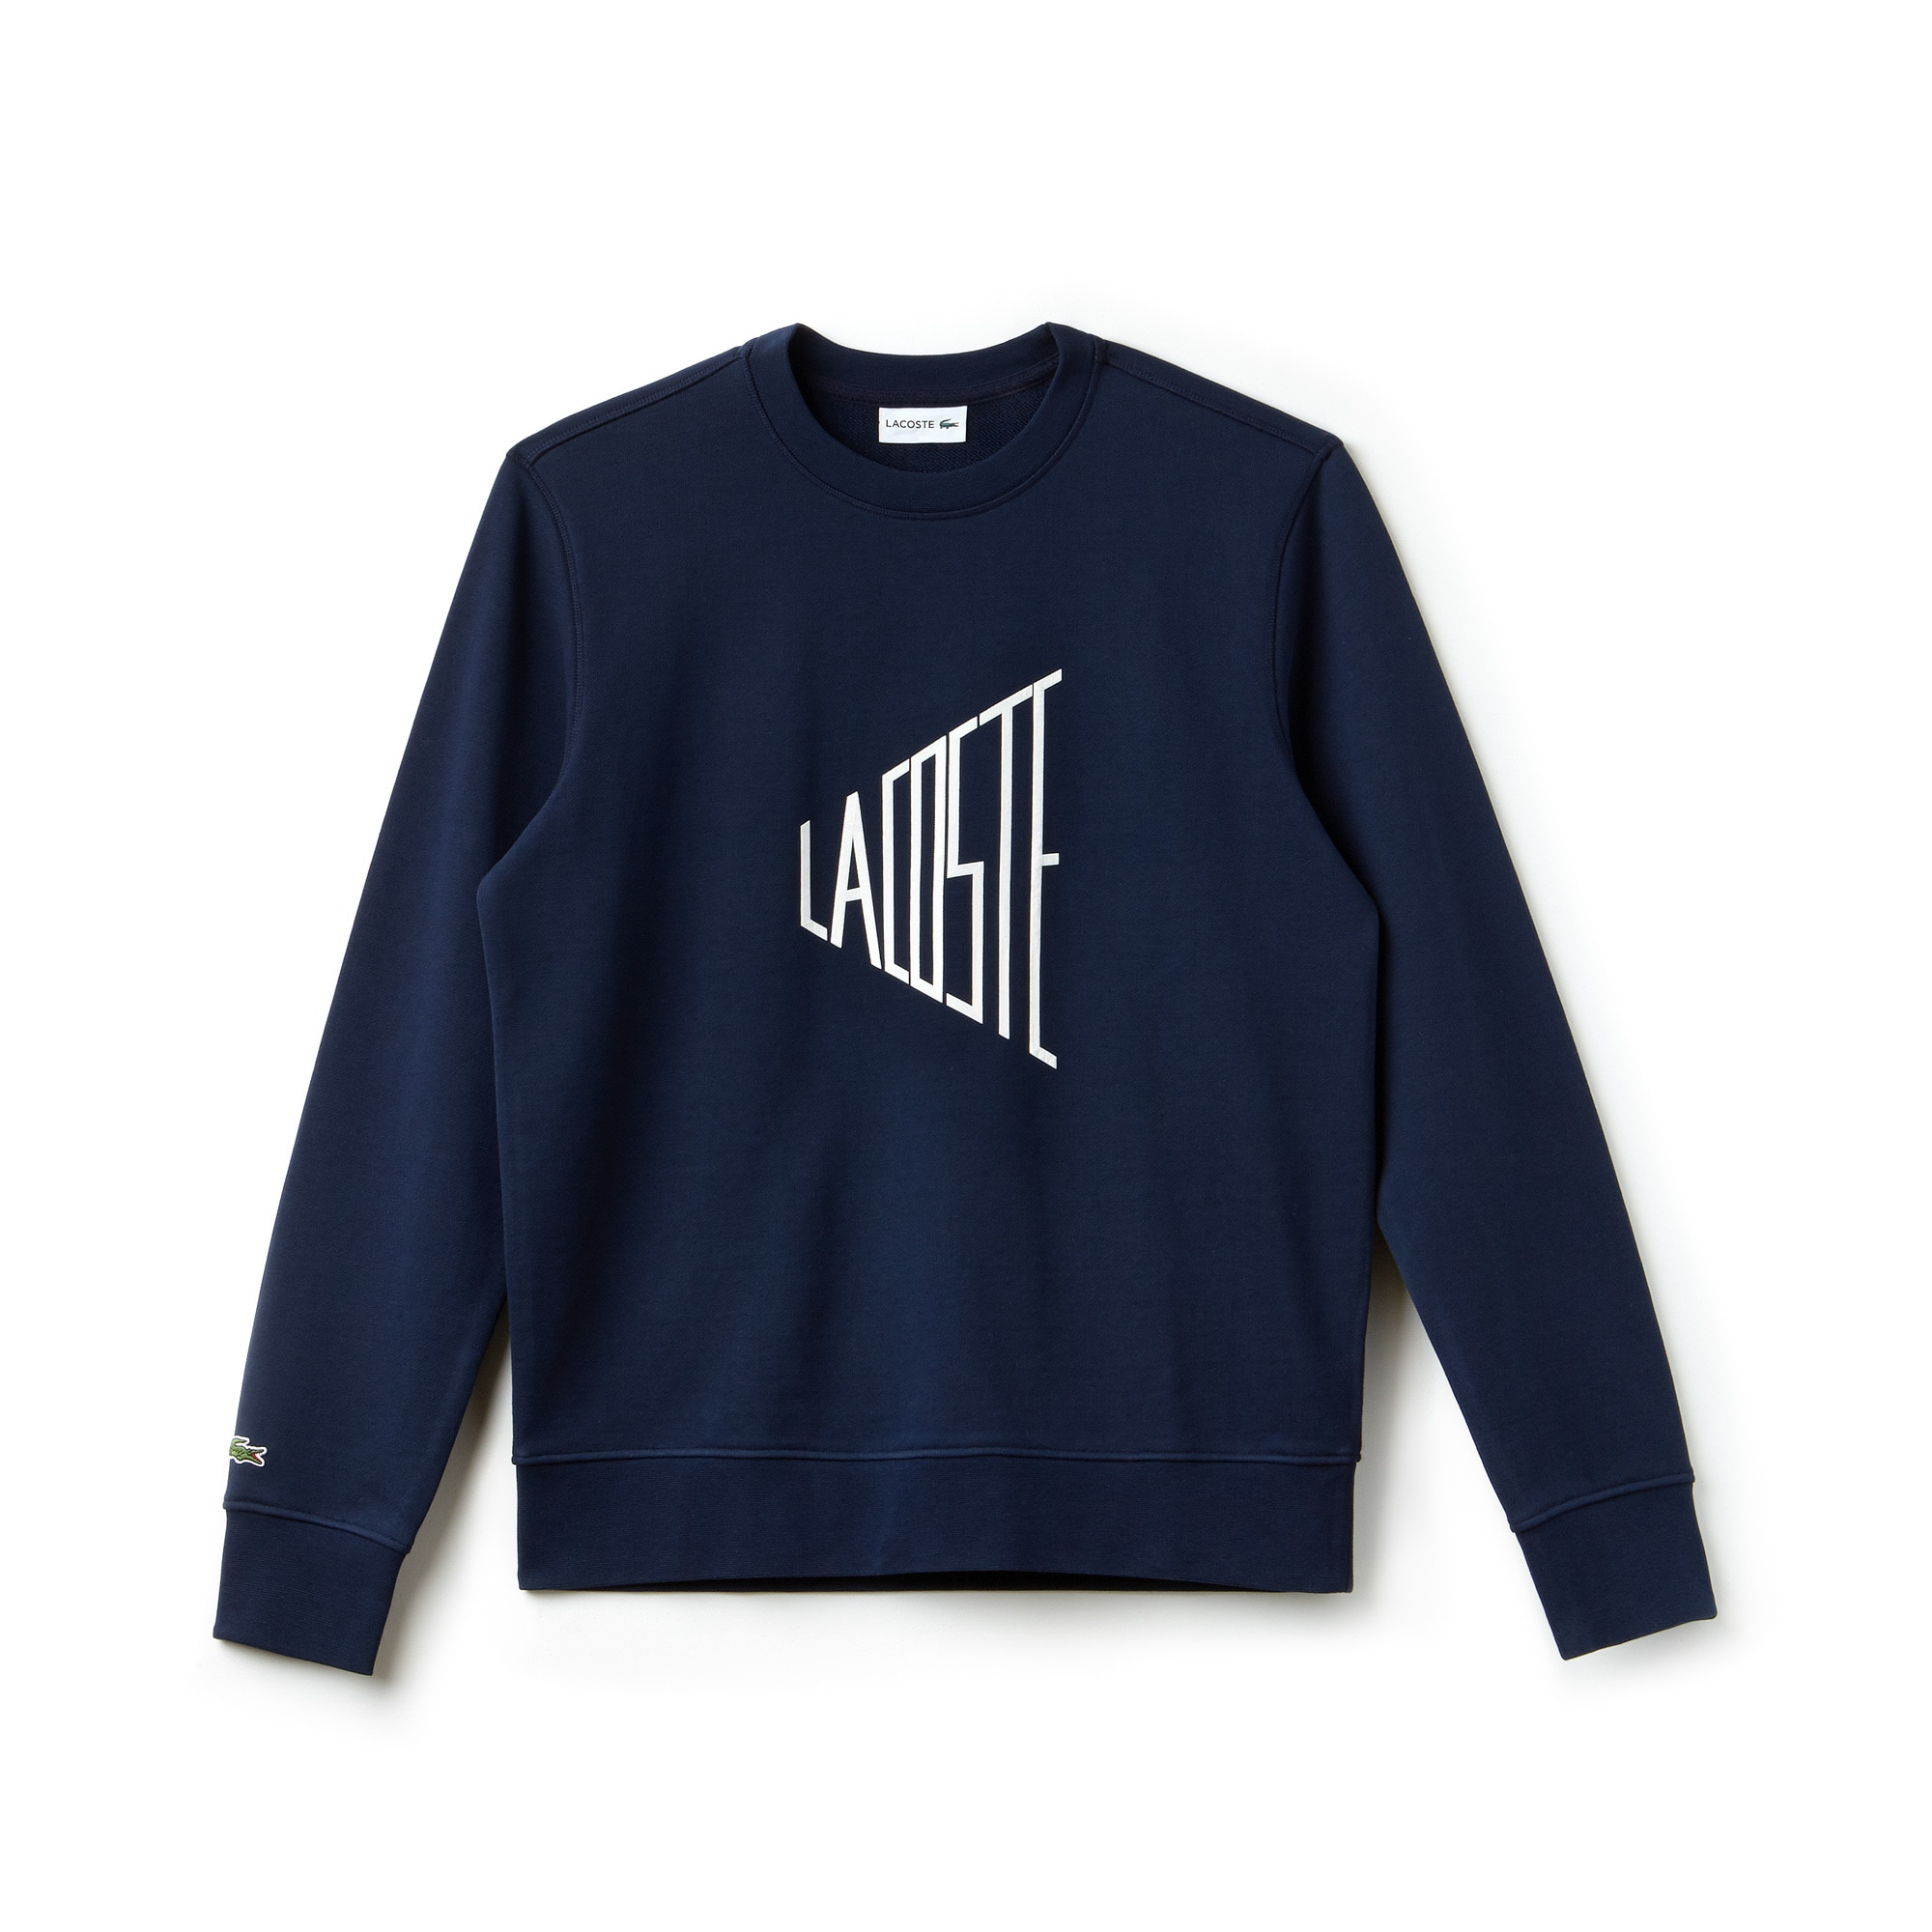 Men's Crew Neck Lettering Sweatshirt